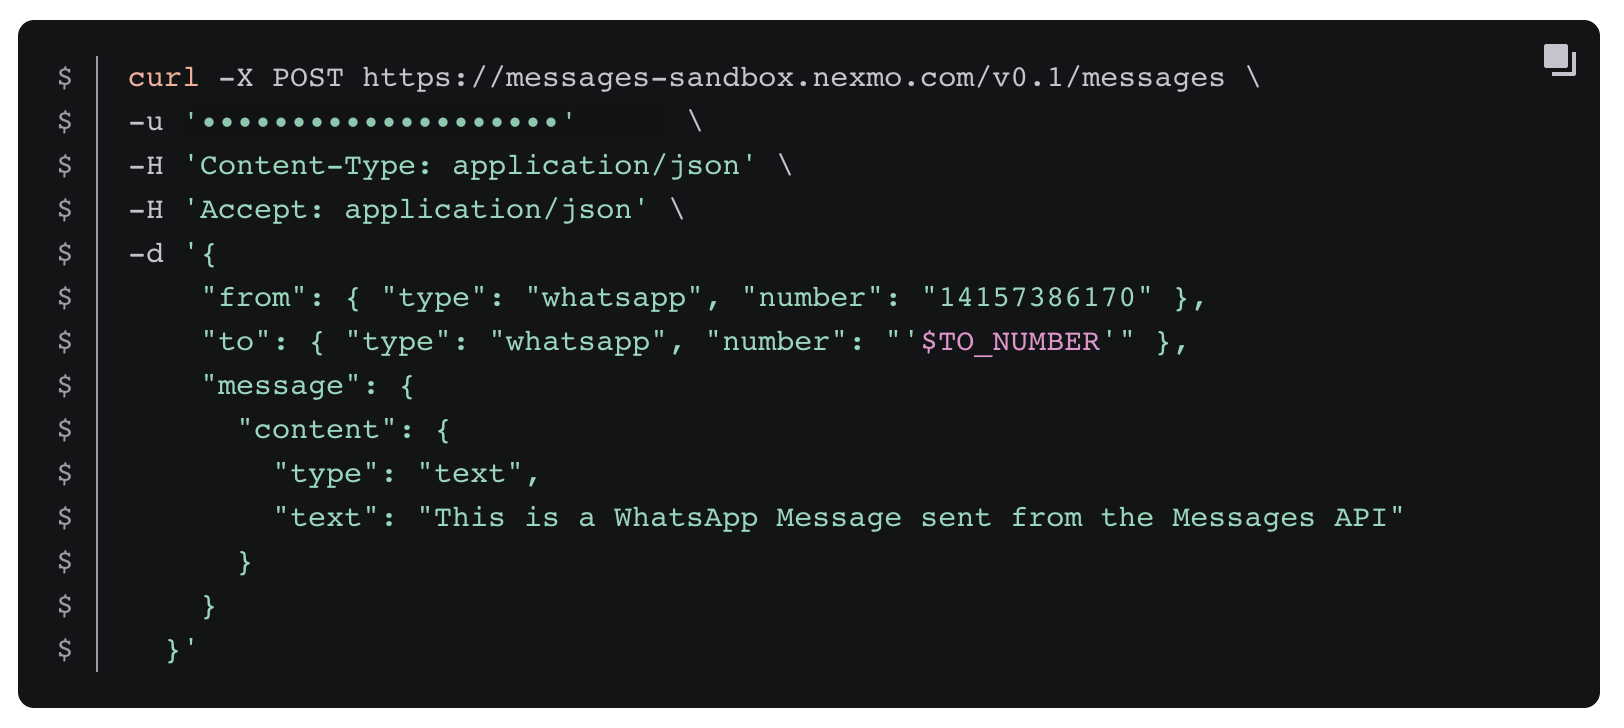 The CURL command required to send a WhatsApp message